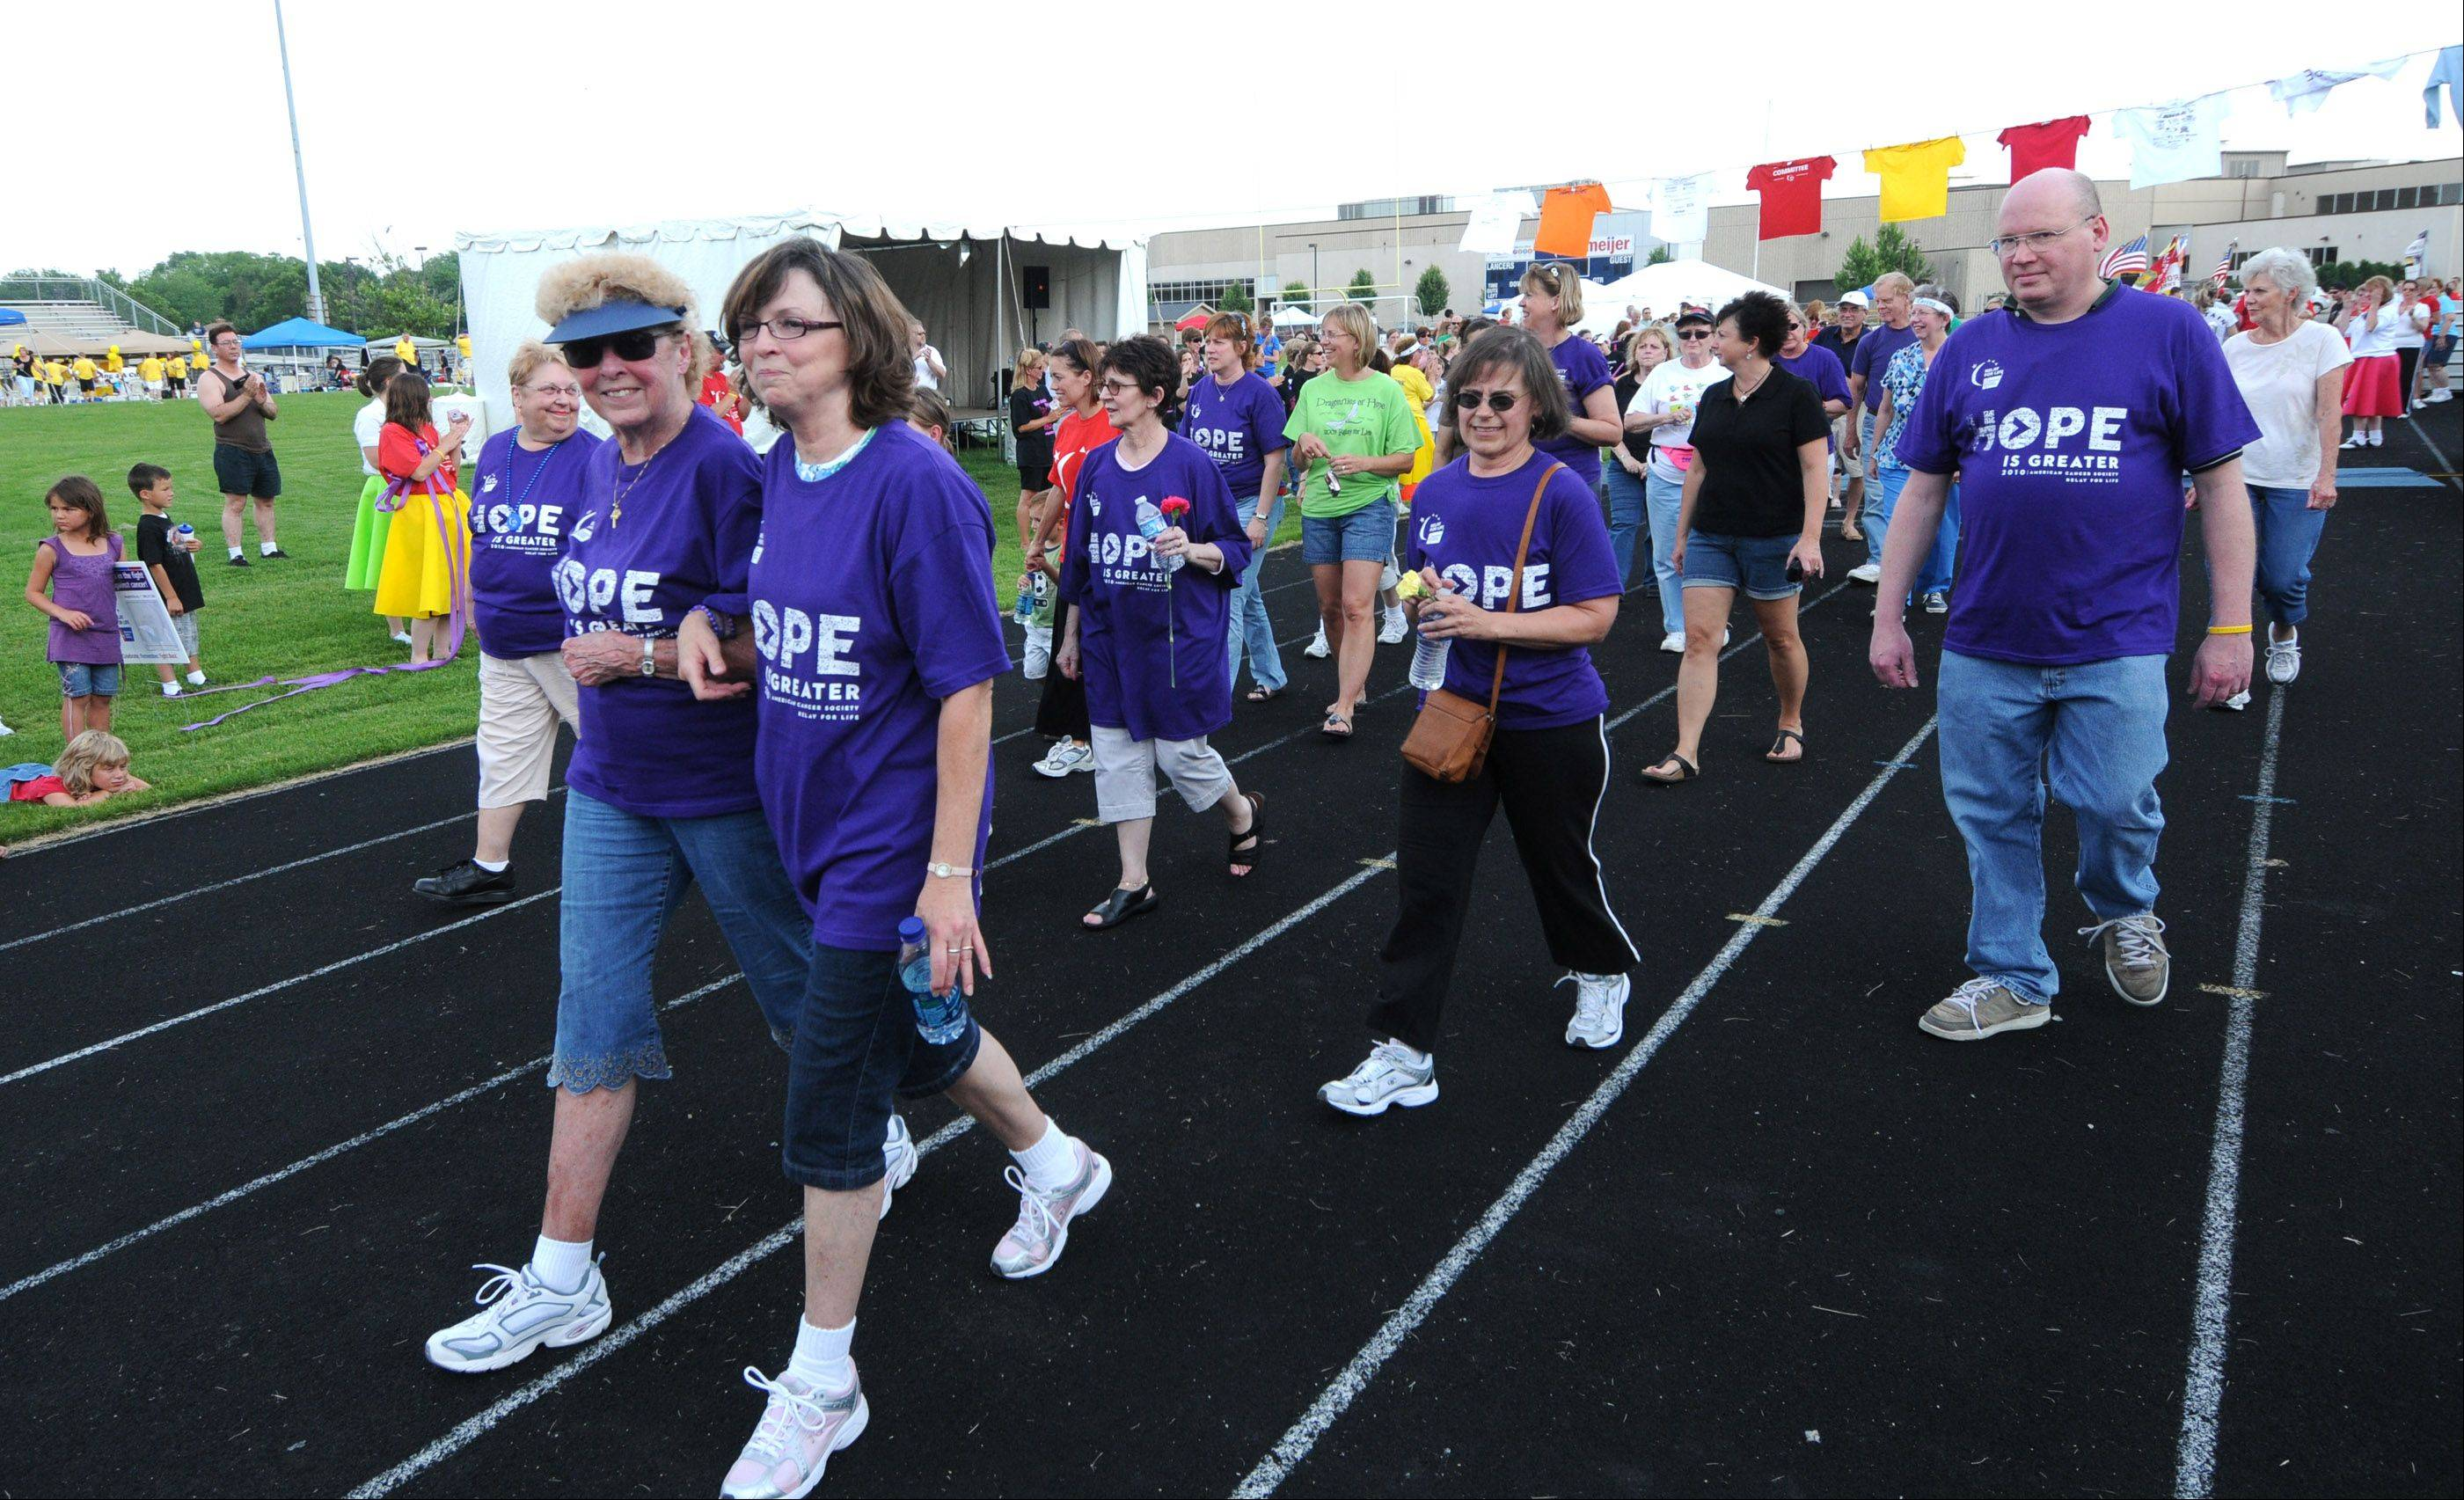 Following the Survivors Lap, members of each relay team take turns walking through the night to symbolize that the fight against cancer doesn't rest.